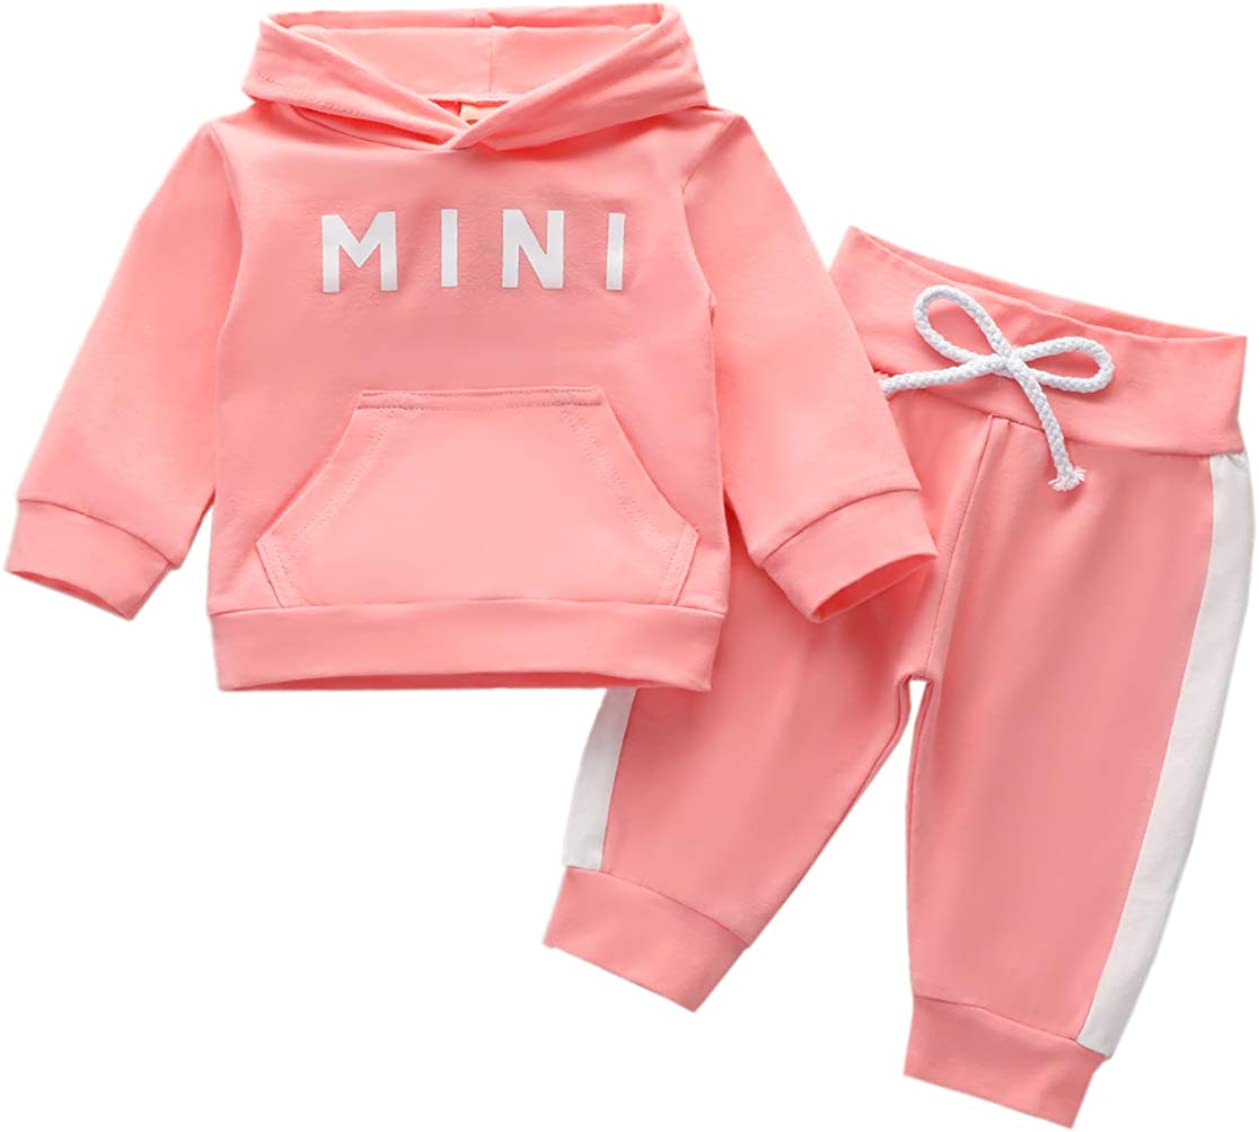 Newborn Baby Girl Fall Winter Clothes Floral Rose Hoodies Sweatshirts Mini Pullover Tops + Pants Outfits Toddler Girl Clothes